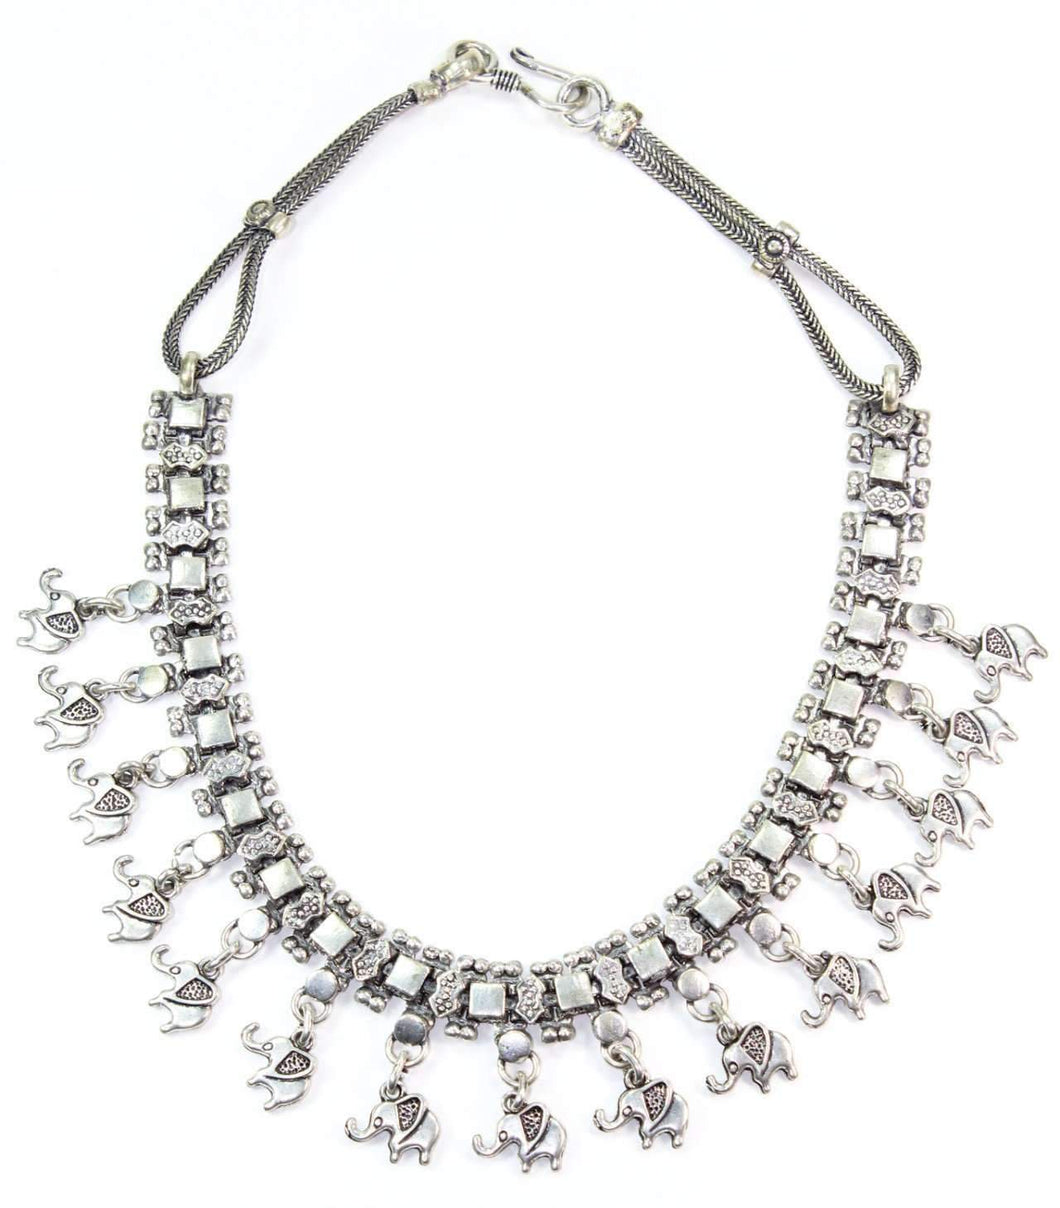 Silver Tone Elephant Charms Tribal Choker Necklace